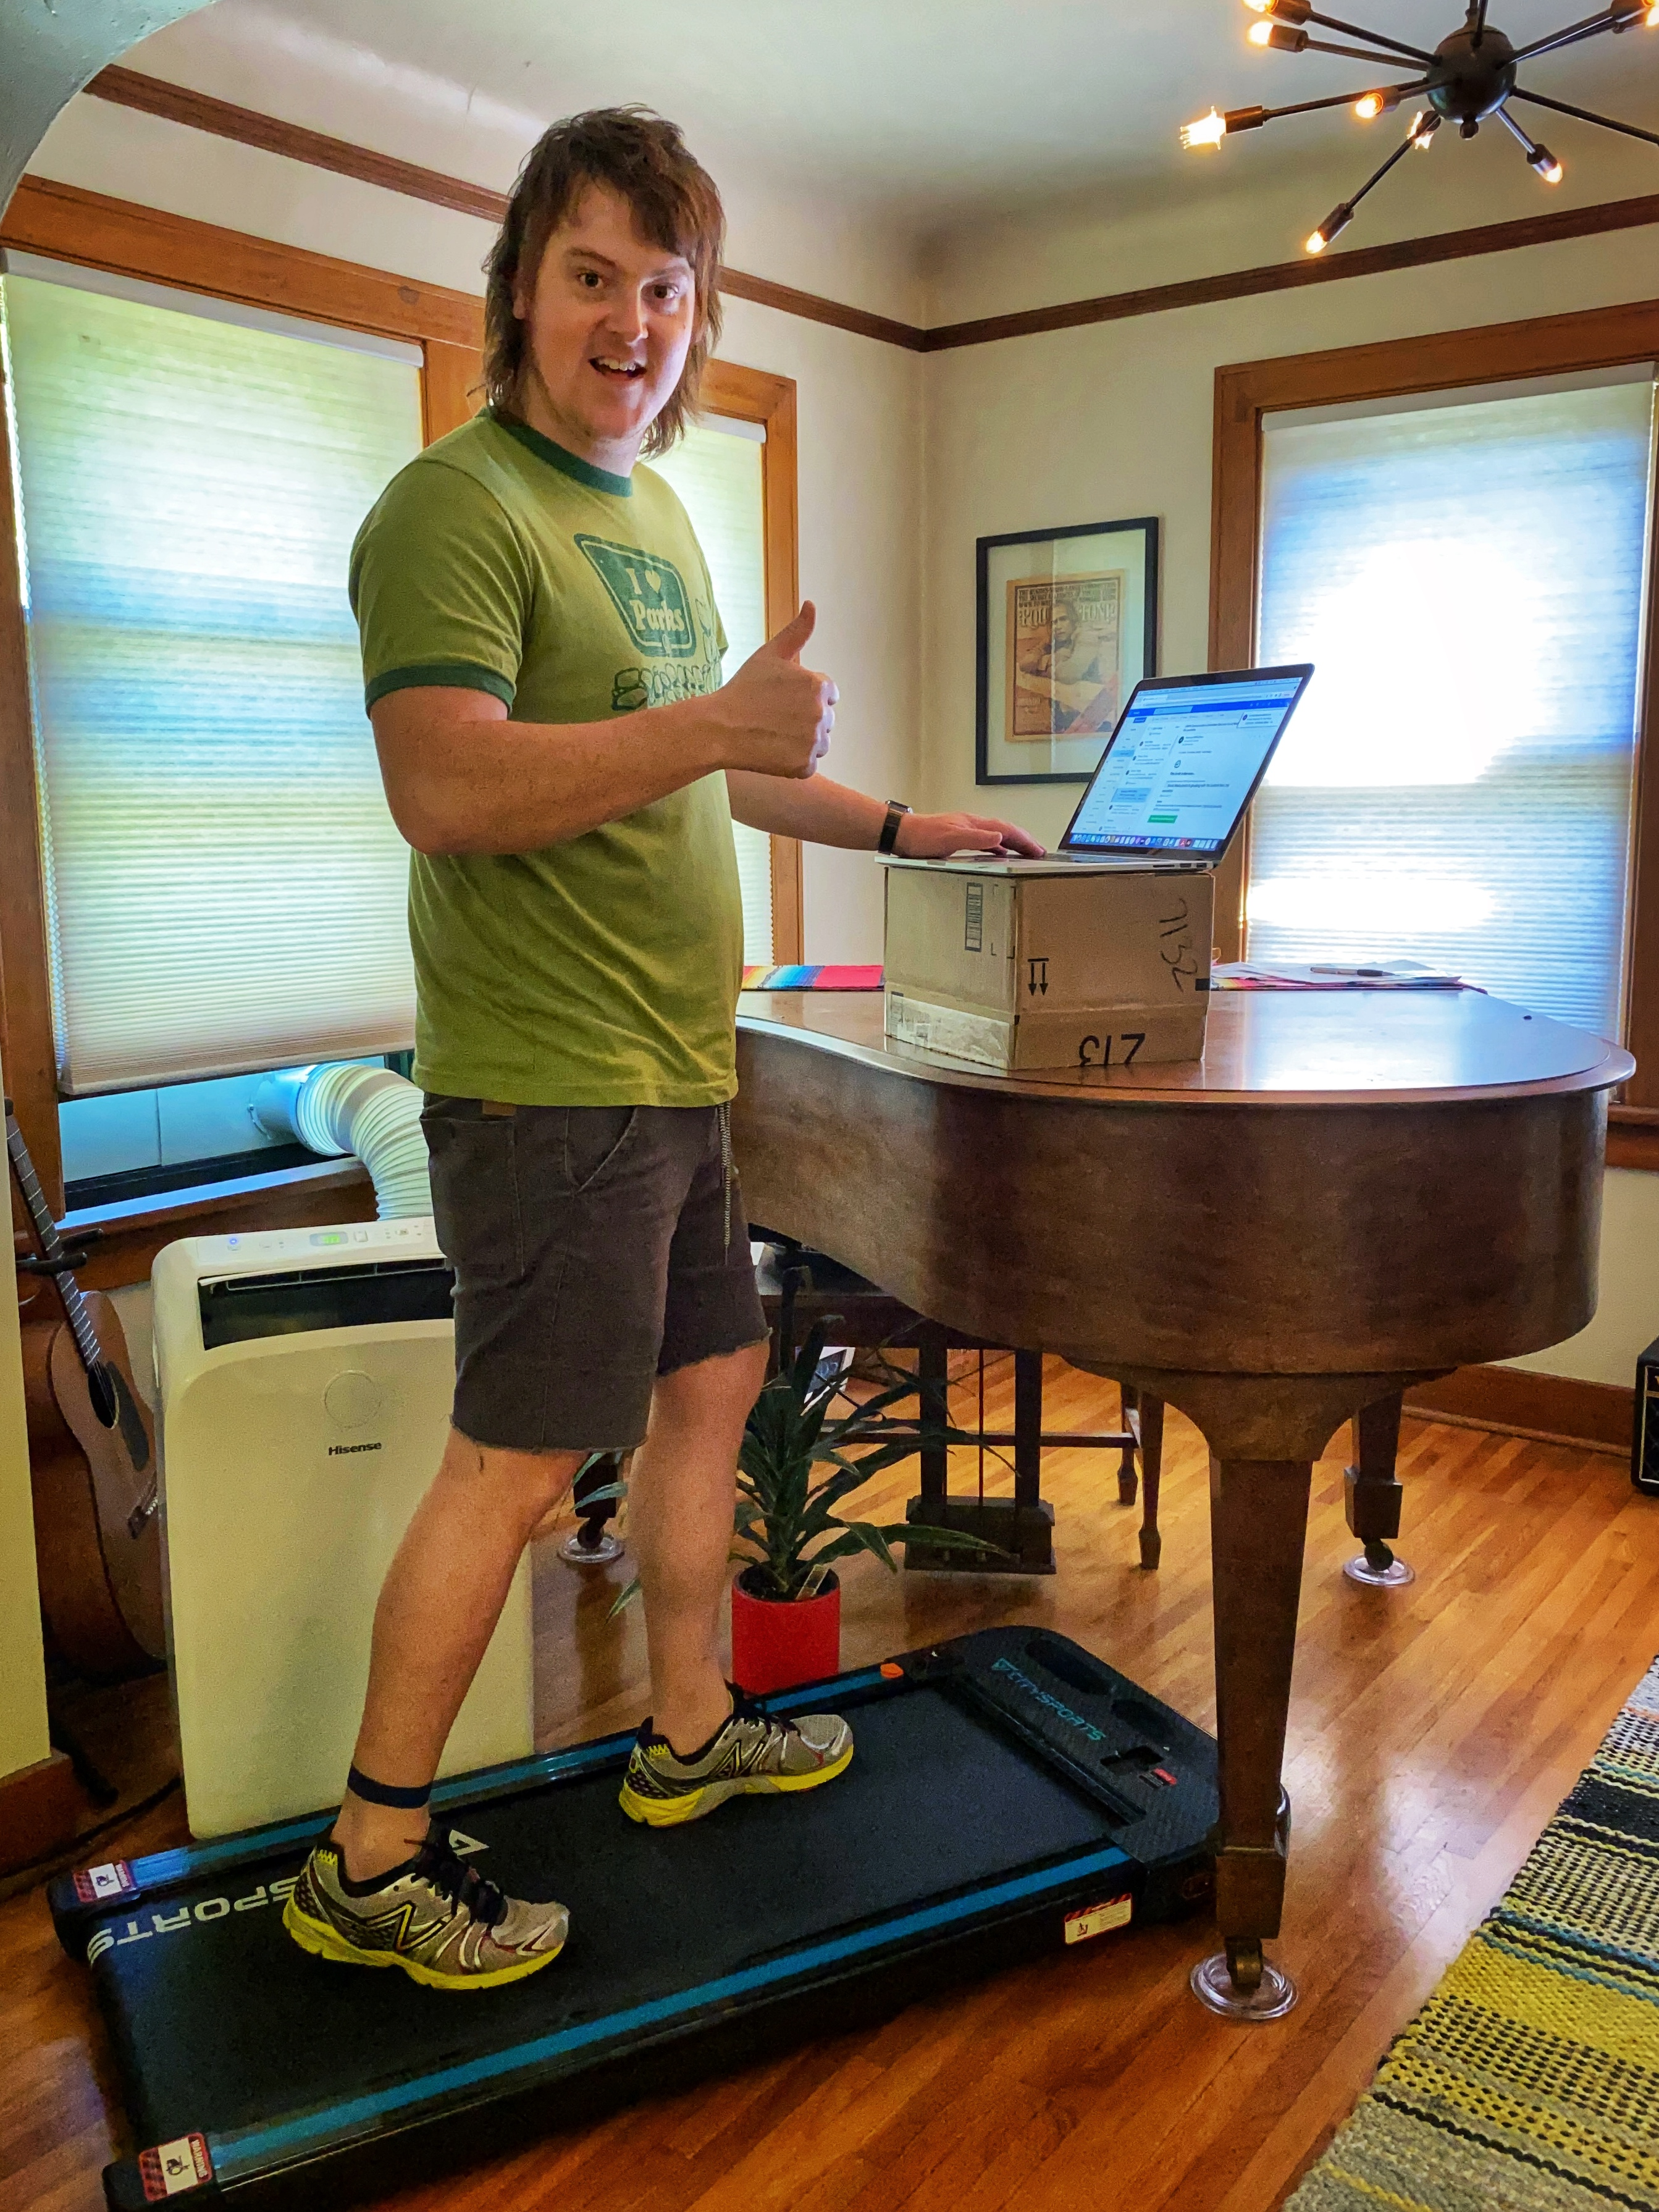 Josh Morrisey on his homemade treadmill desk with a computer propped up on a piano